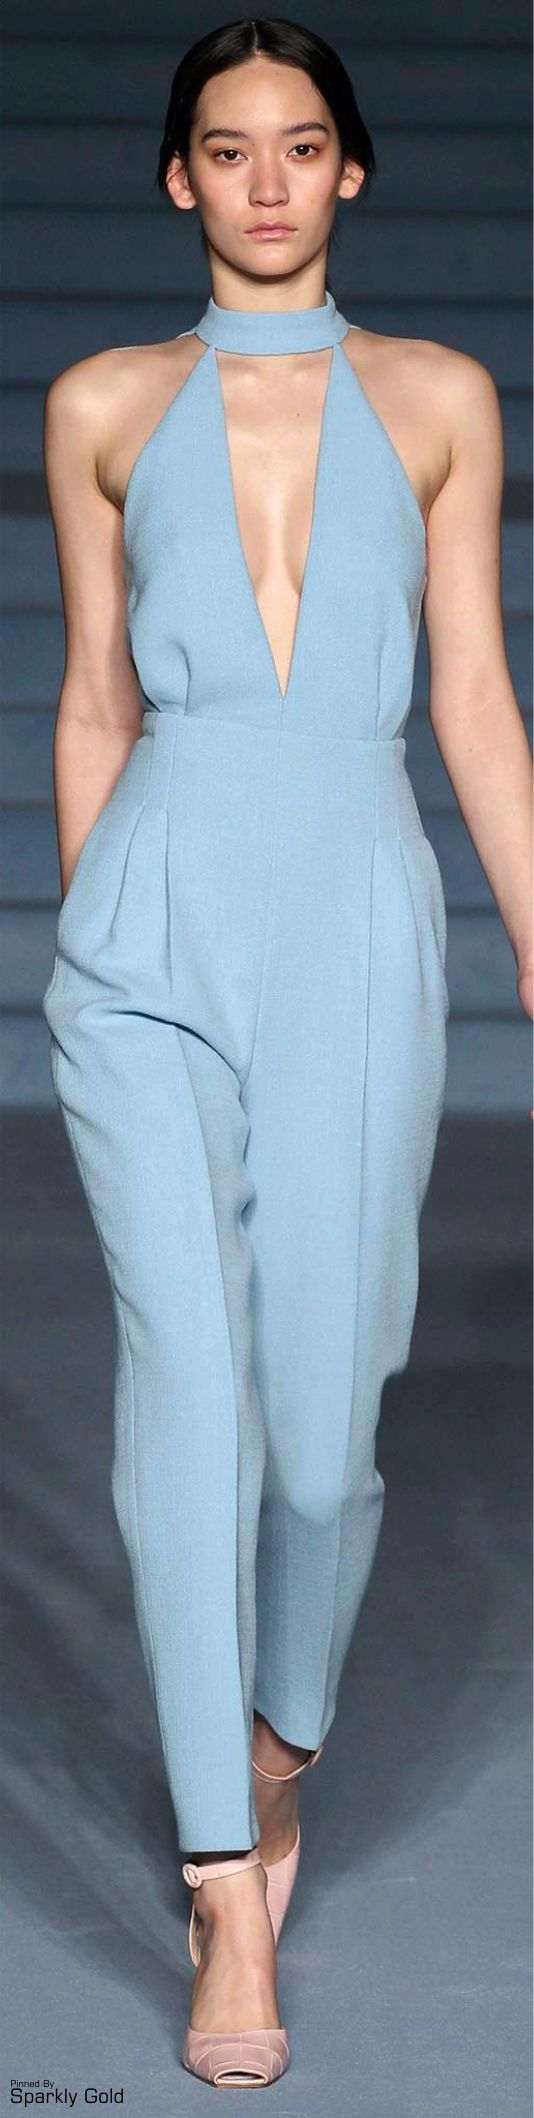 Emilia Wickstead Fall 2015 RTW